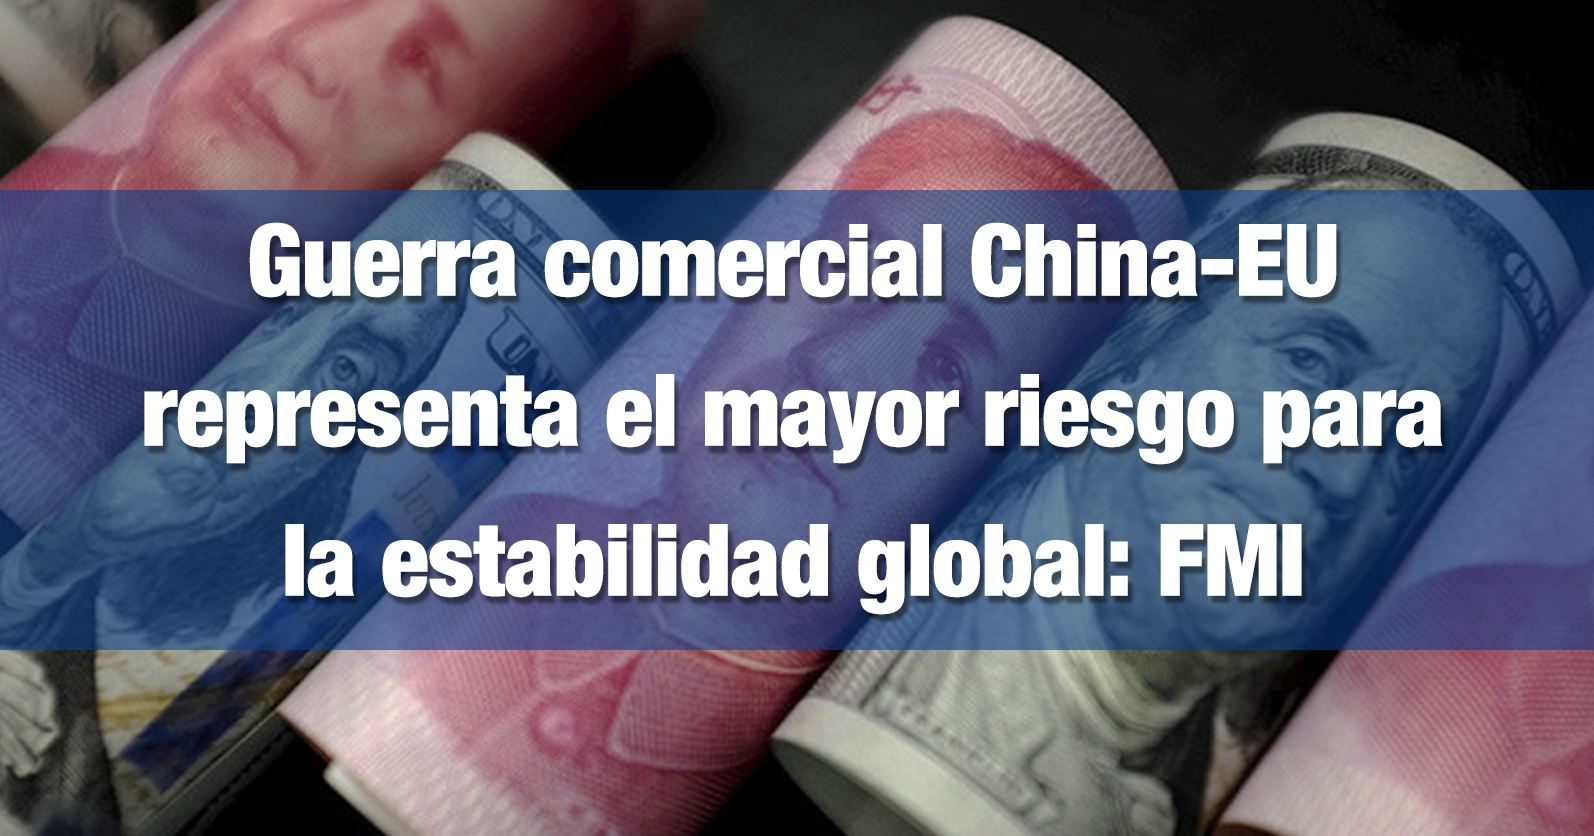 Guerra comercial China-EU representa el mayor riesgo para la estabilidad global: FMI